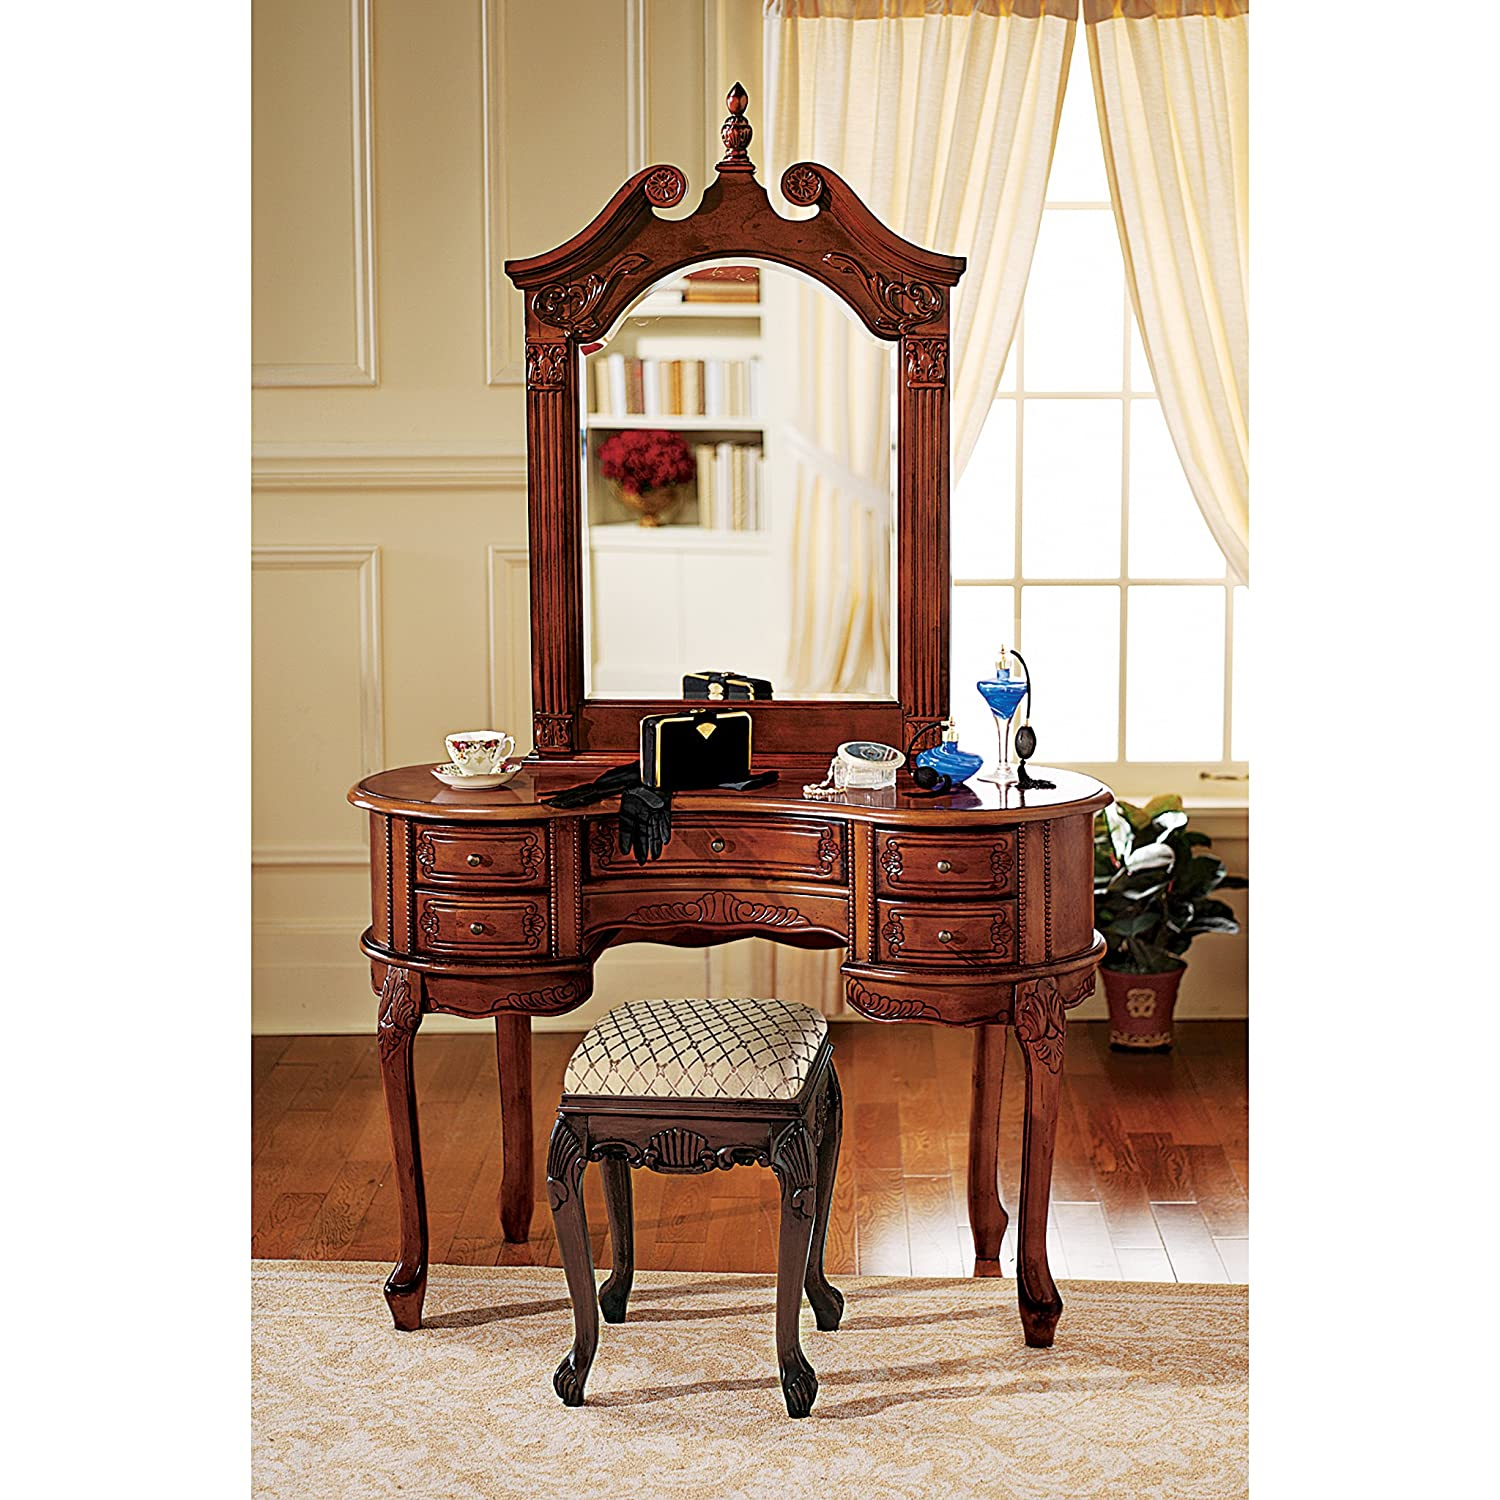 Uncategorized Buy Dressing Table With Mirror amazon com design toscano the queen anne dressing table and mirror kitchen dining